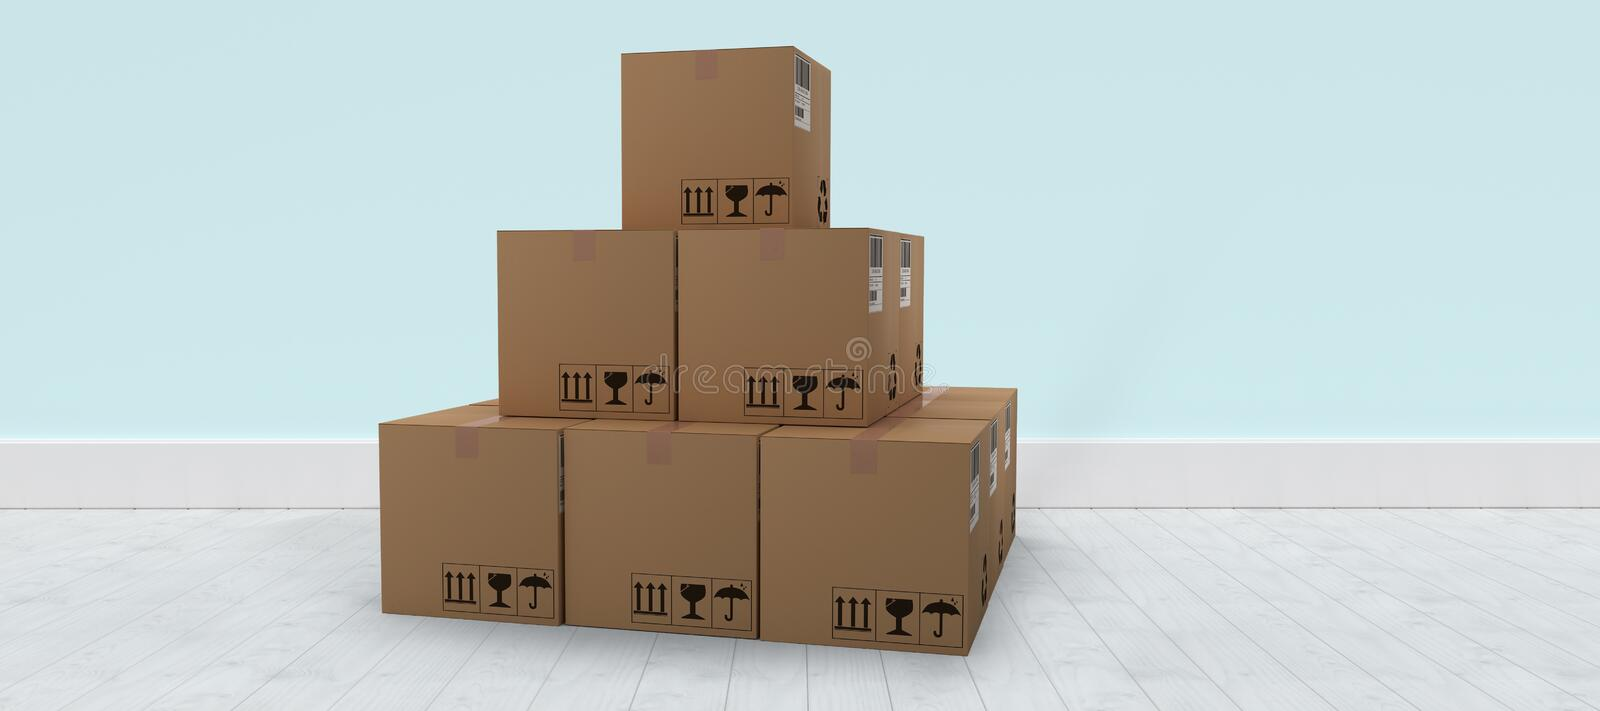 Composite 3d image of stack of brown packed cardboard boxes. Stack of brown packed cardboard 3D boxes against blue wall by hardwood floor royalty free illustration